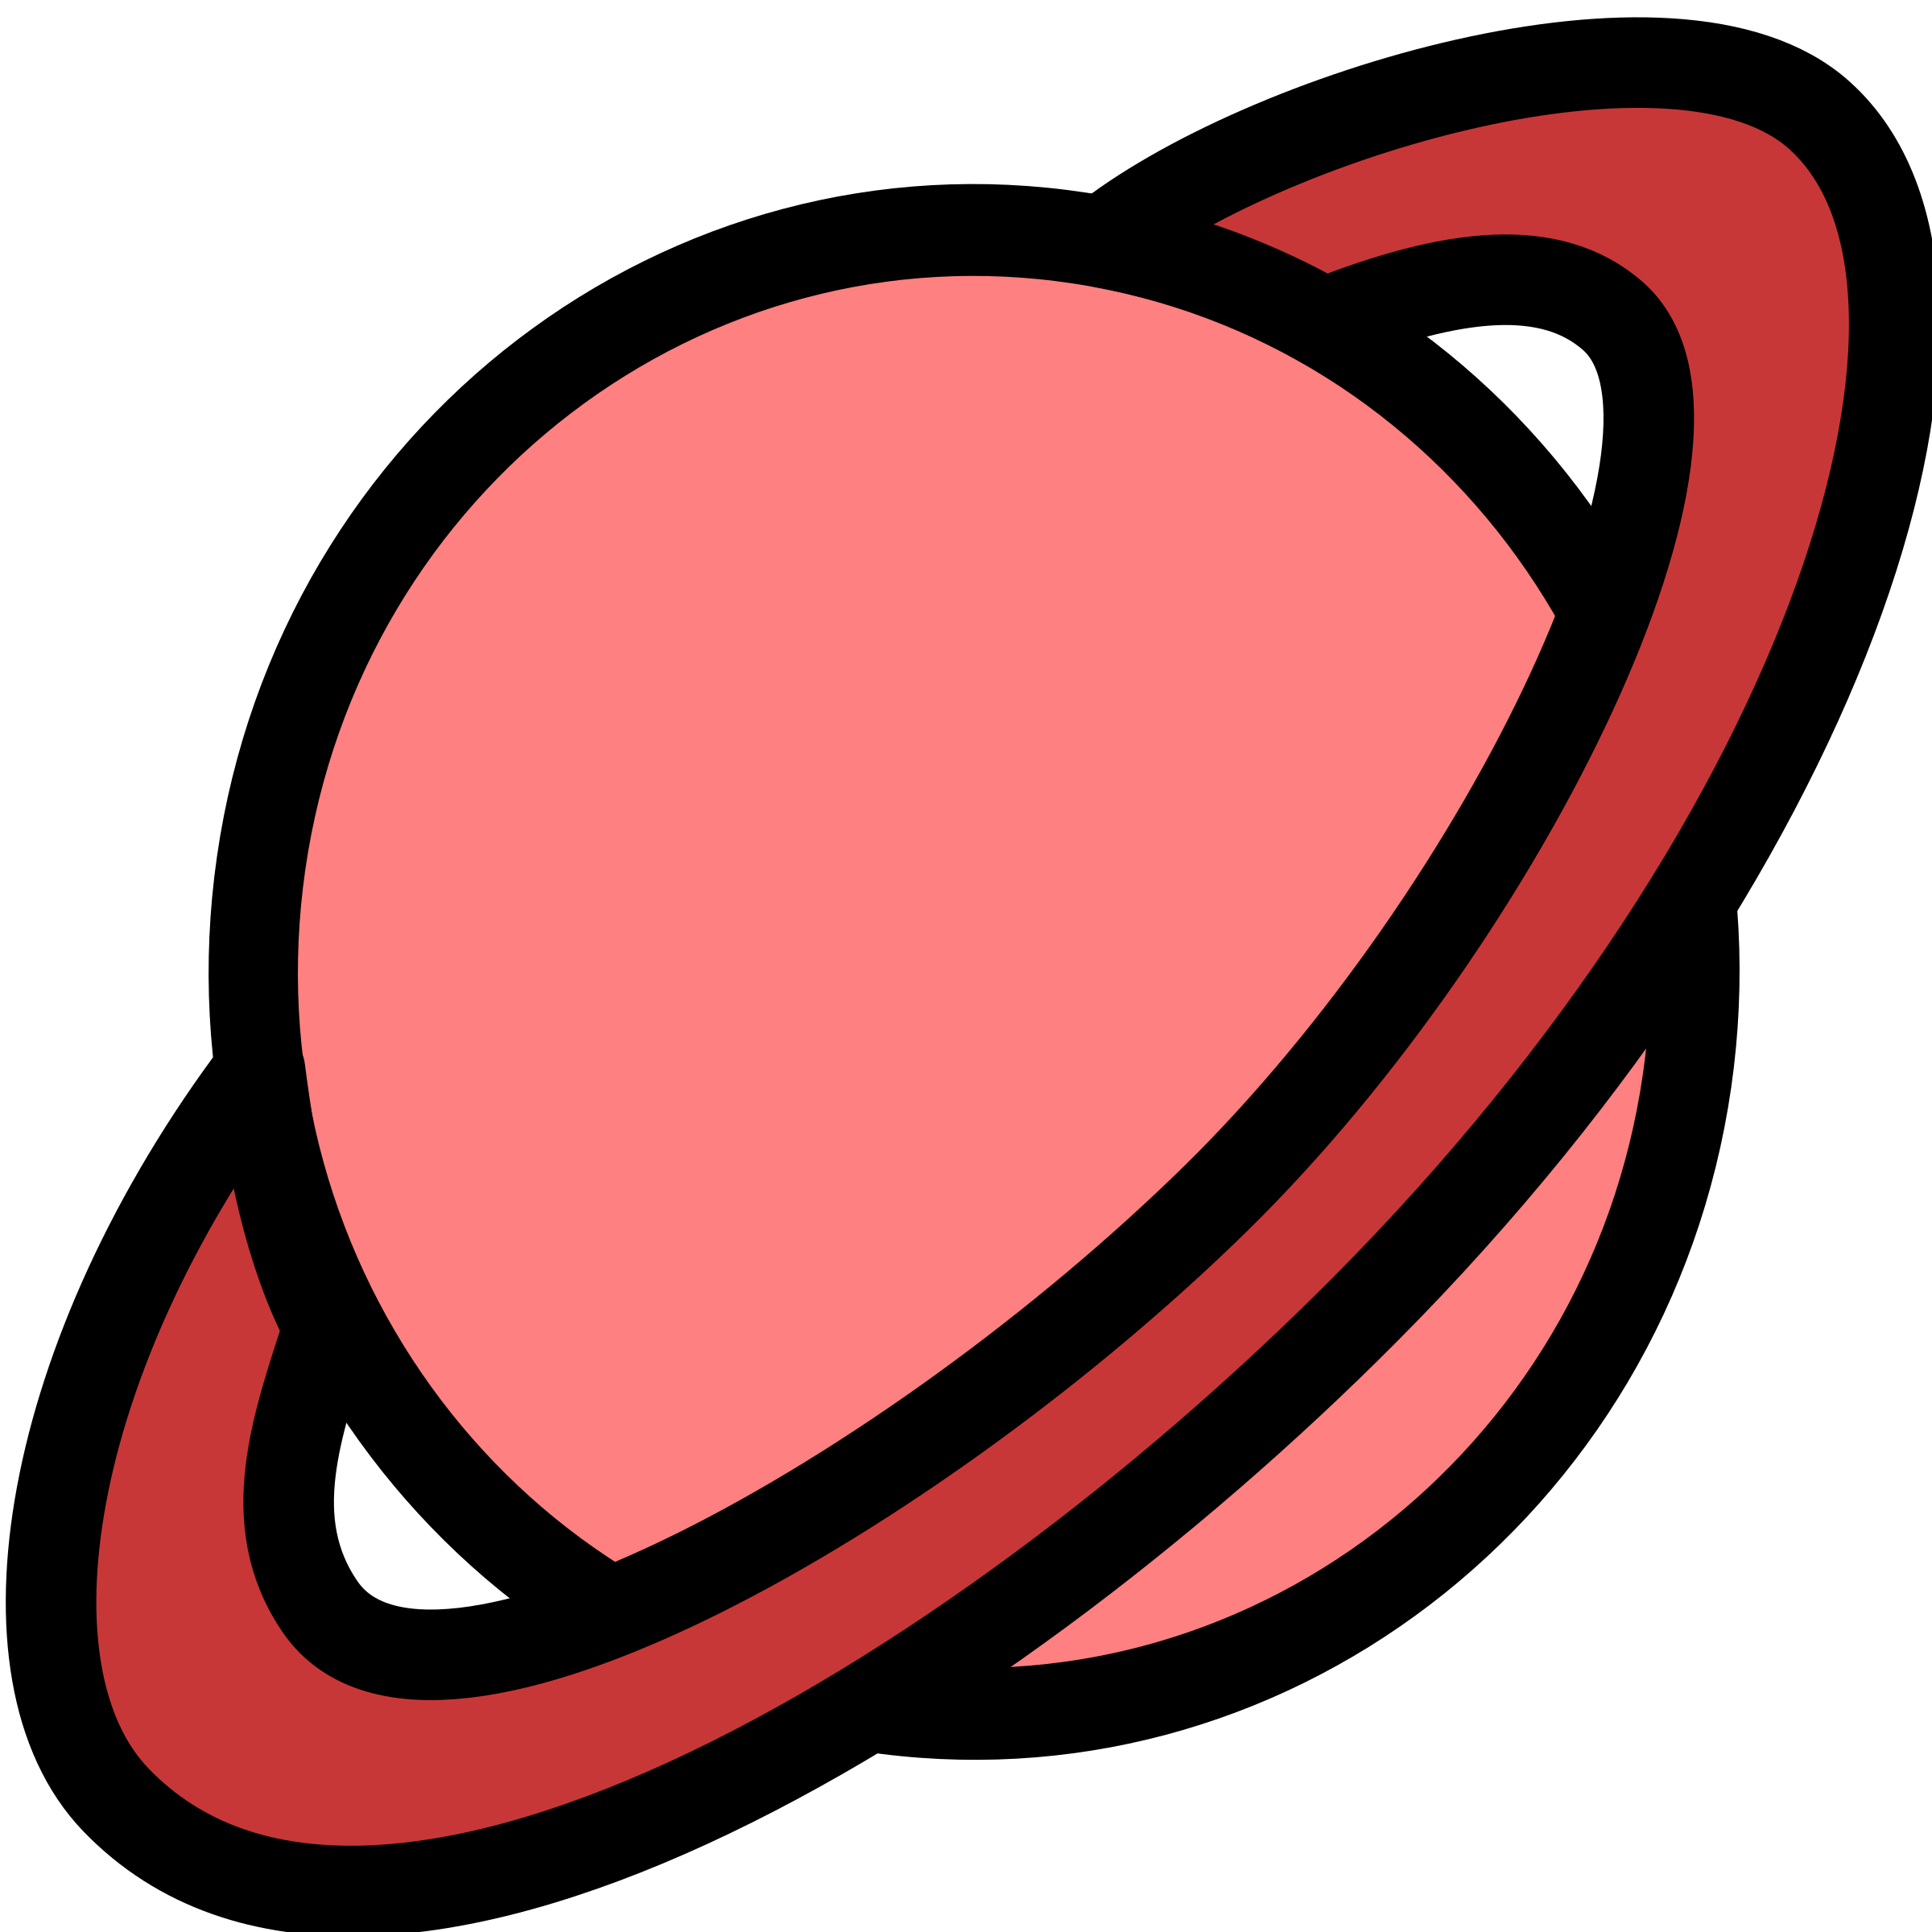 Planet icon png. Icons free and downloads